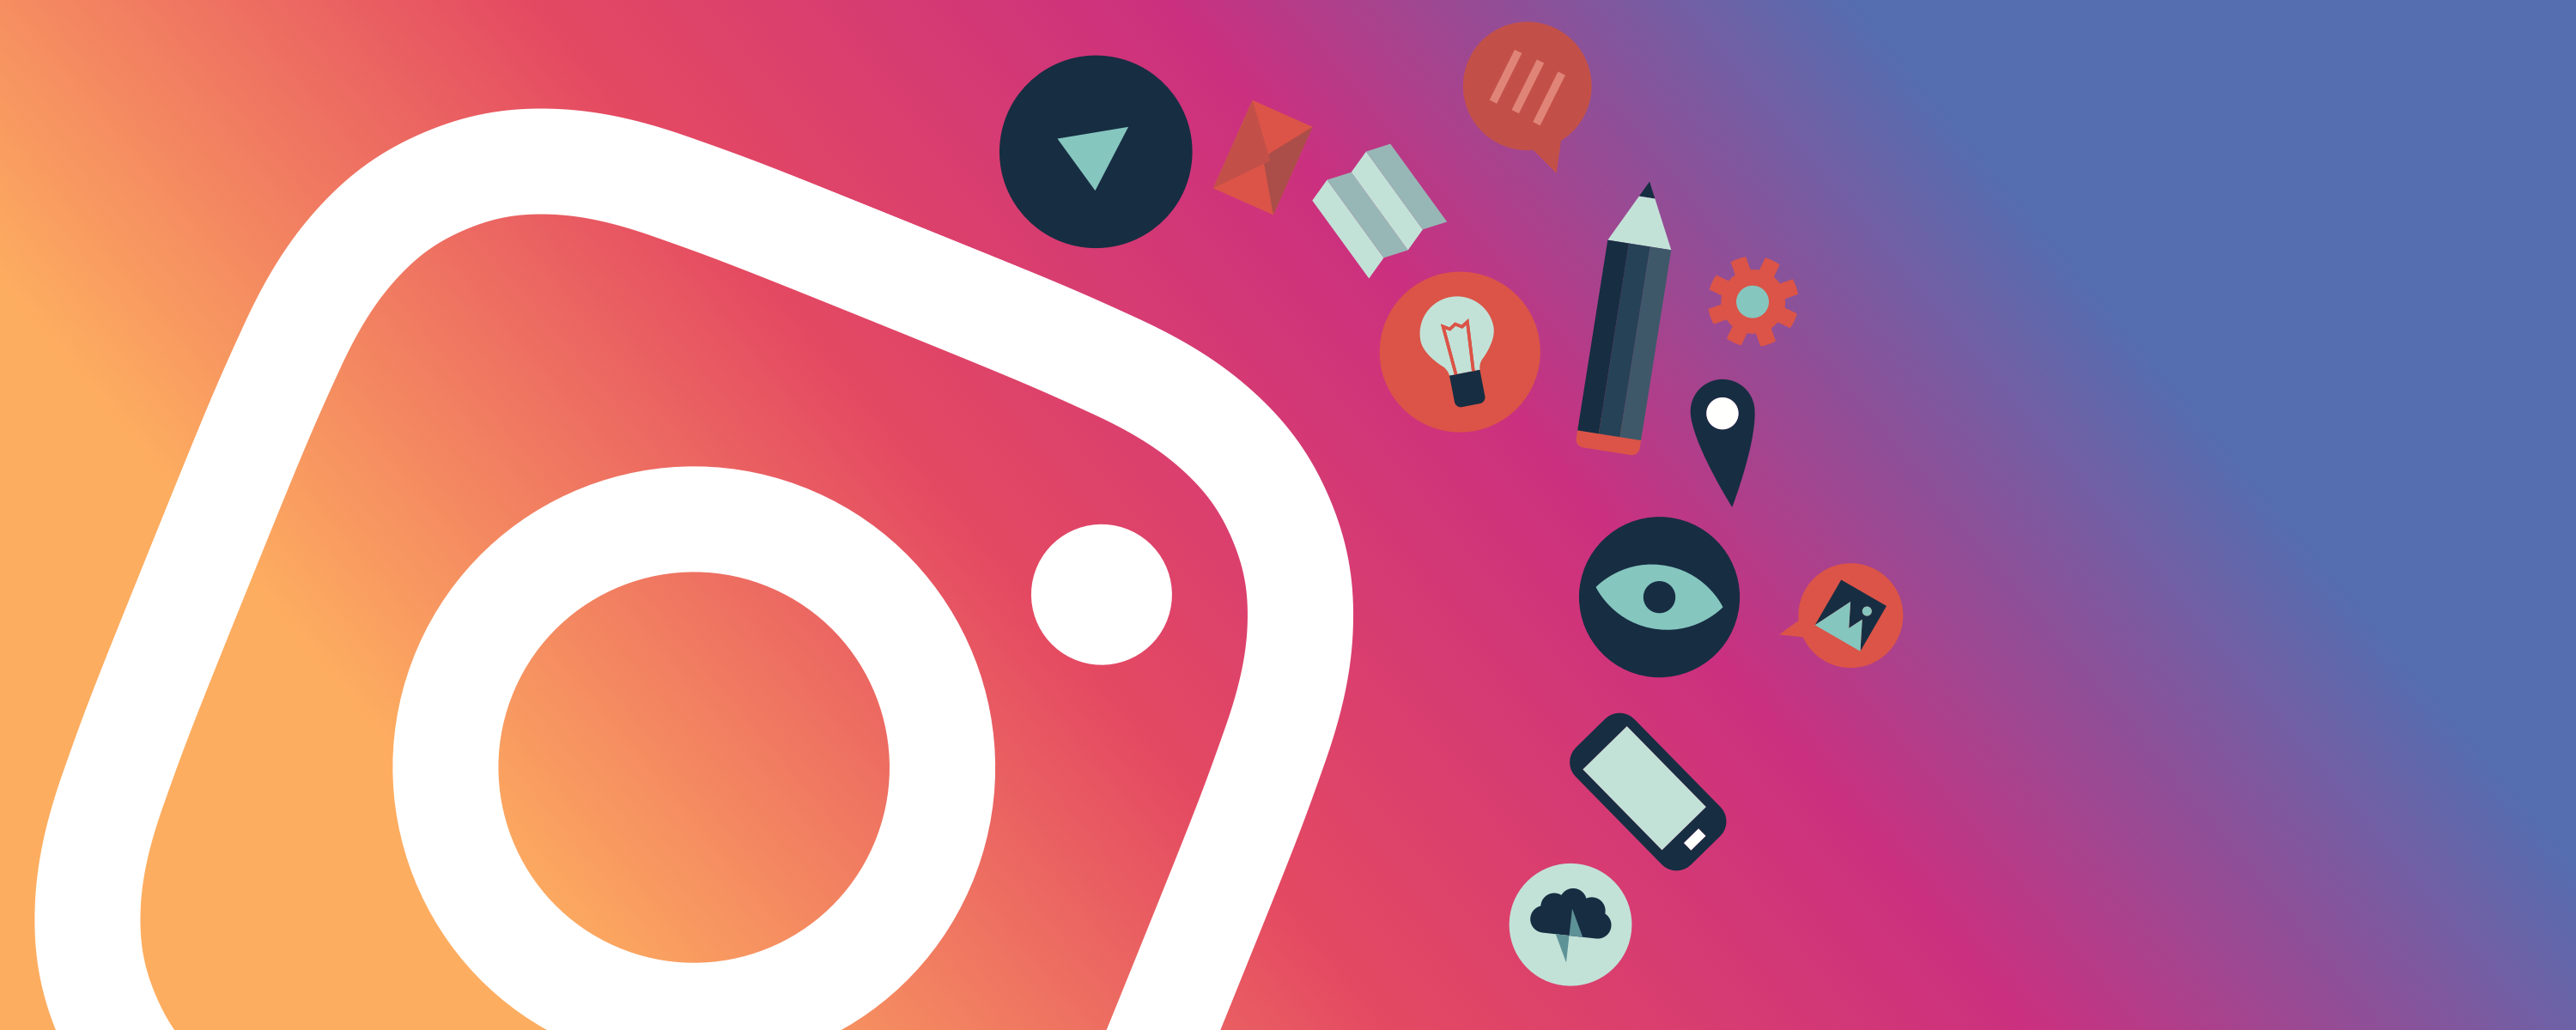 Tips on How to Manage Your Security in Social Media